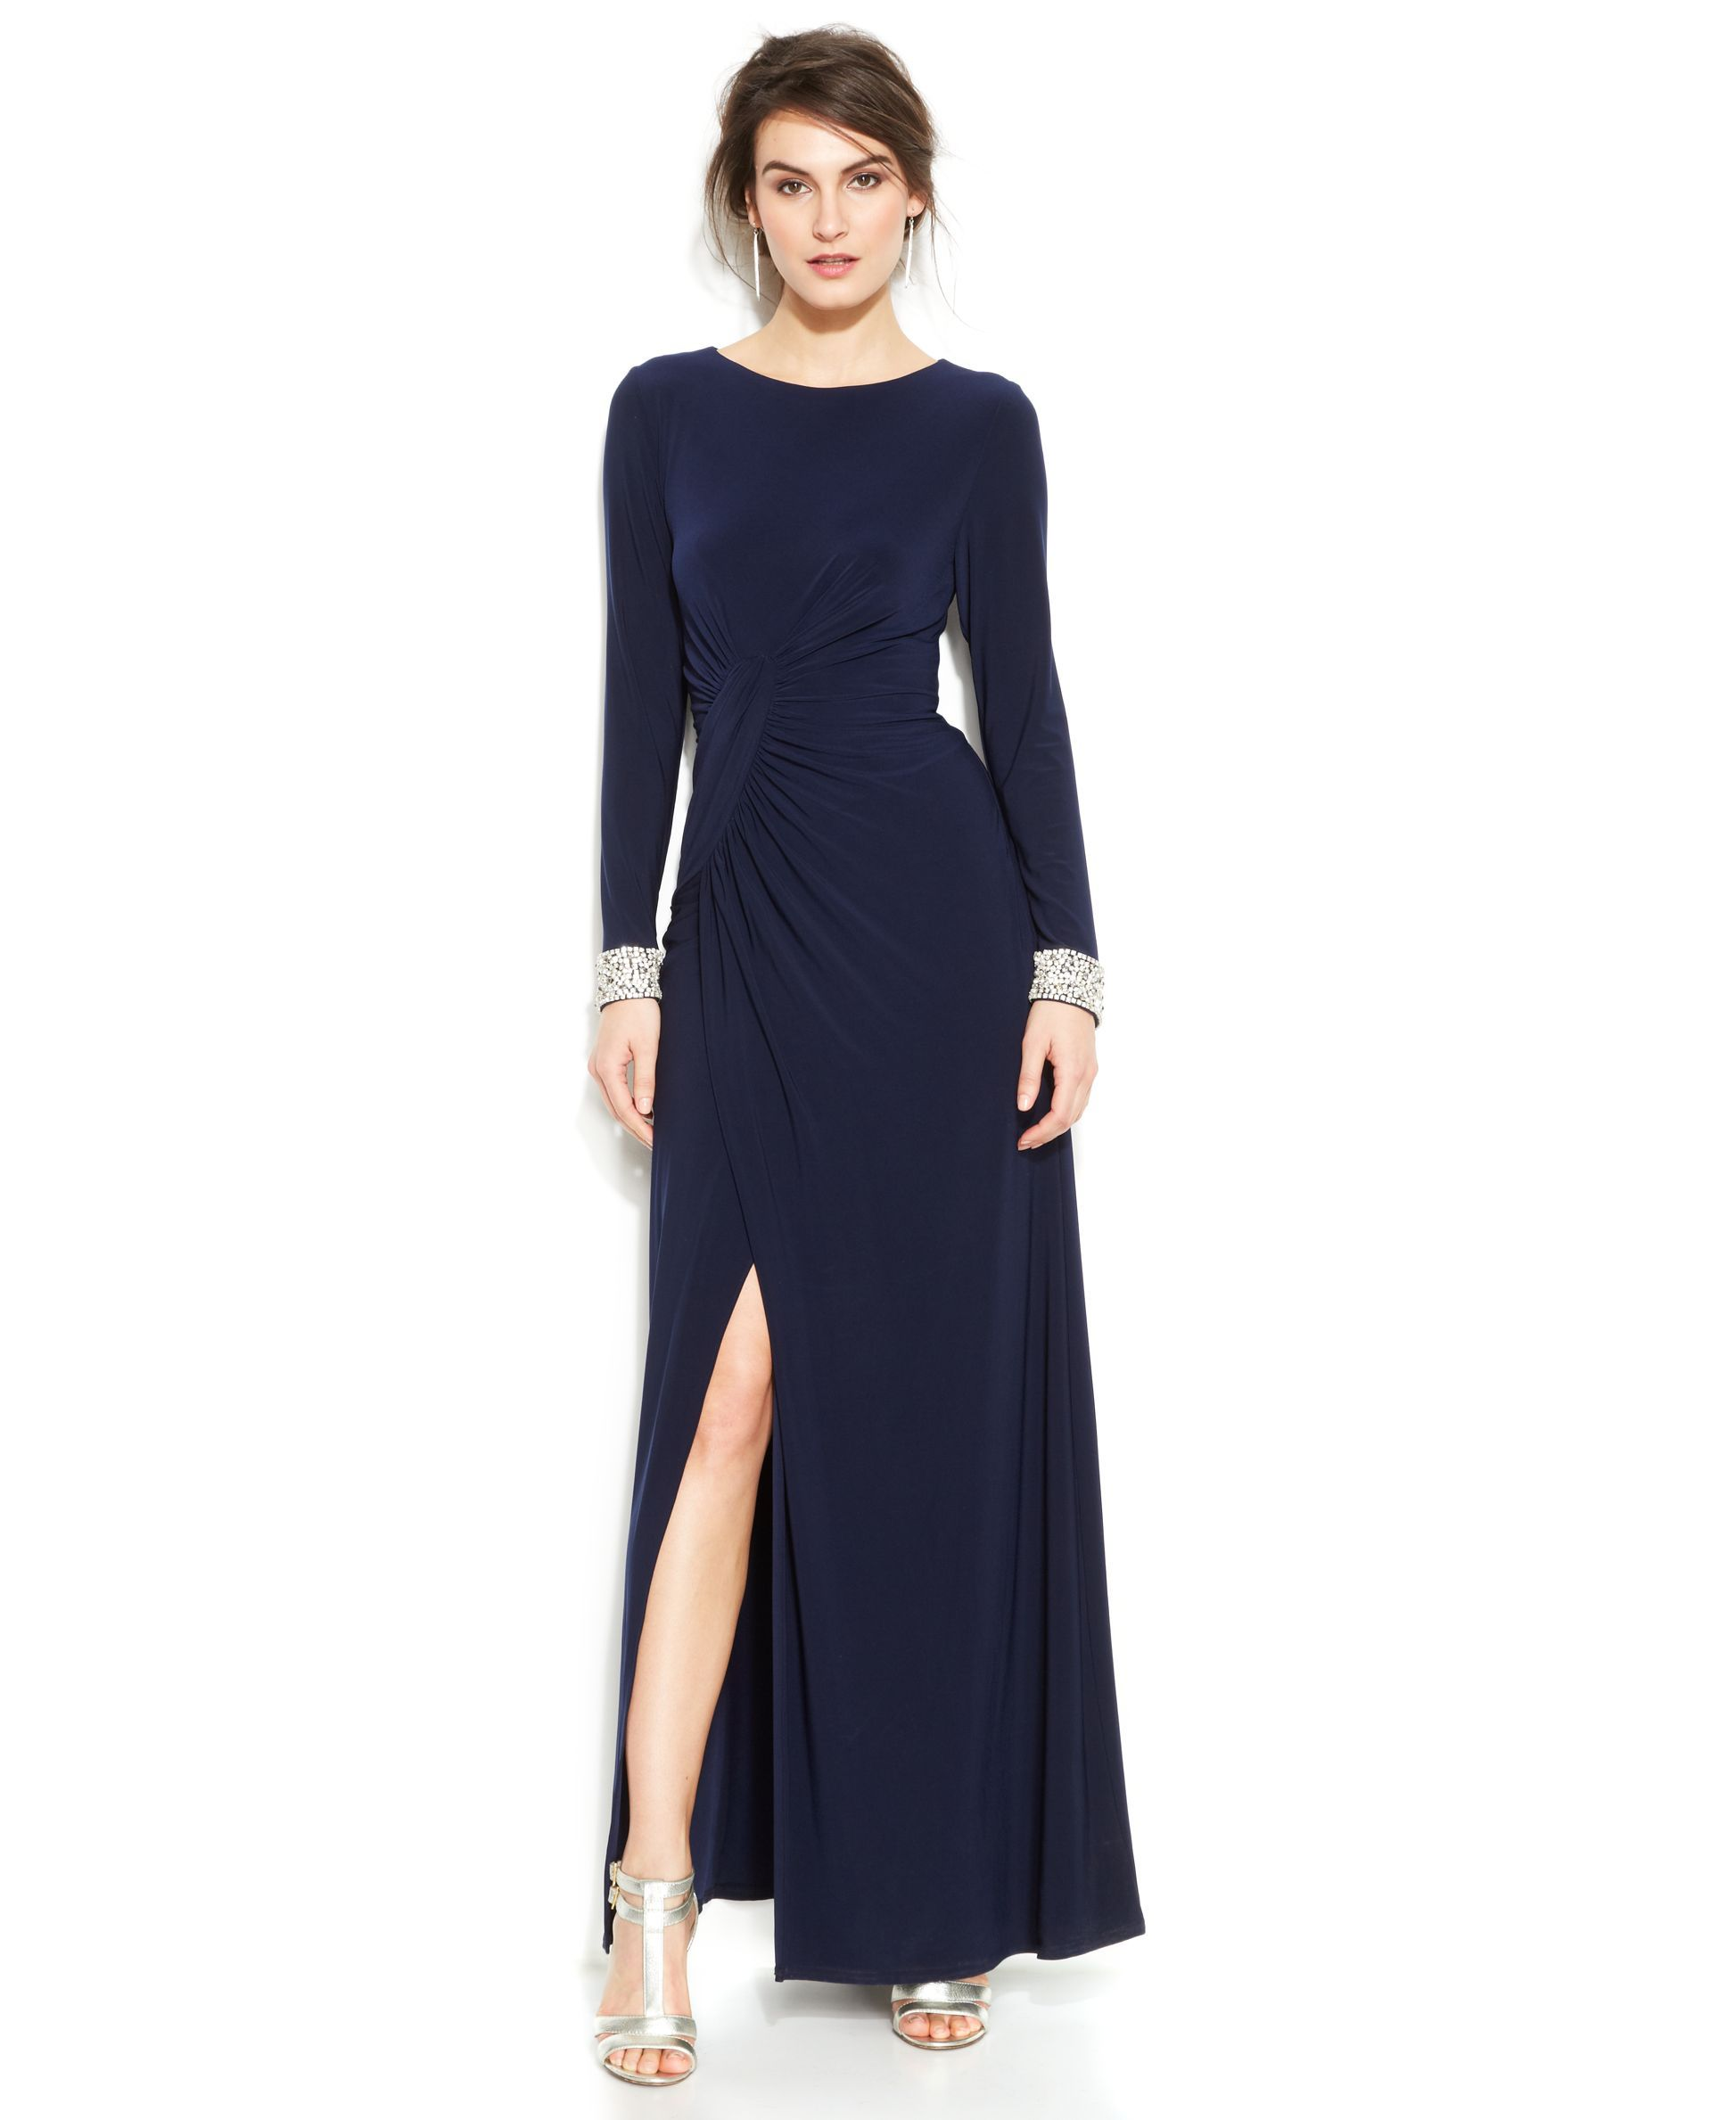 d8b28939e7ad0 Vince Camuto Long-Sleeve Embellished Faux-Wrap Gown - Modern Maxi Dress -  Women - Macy's